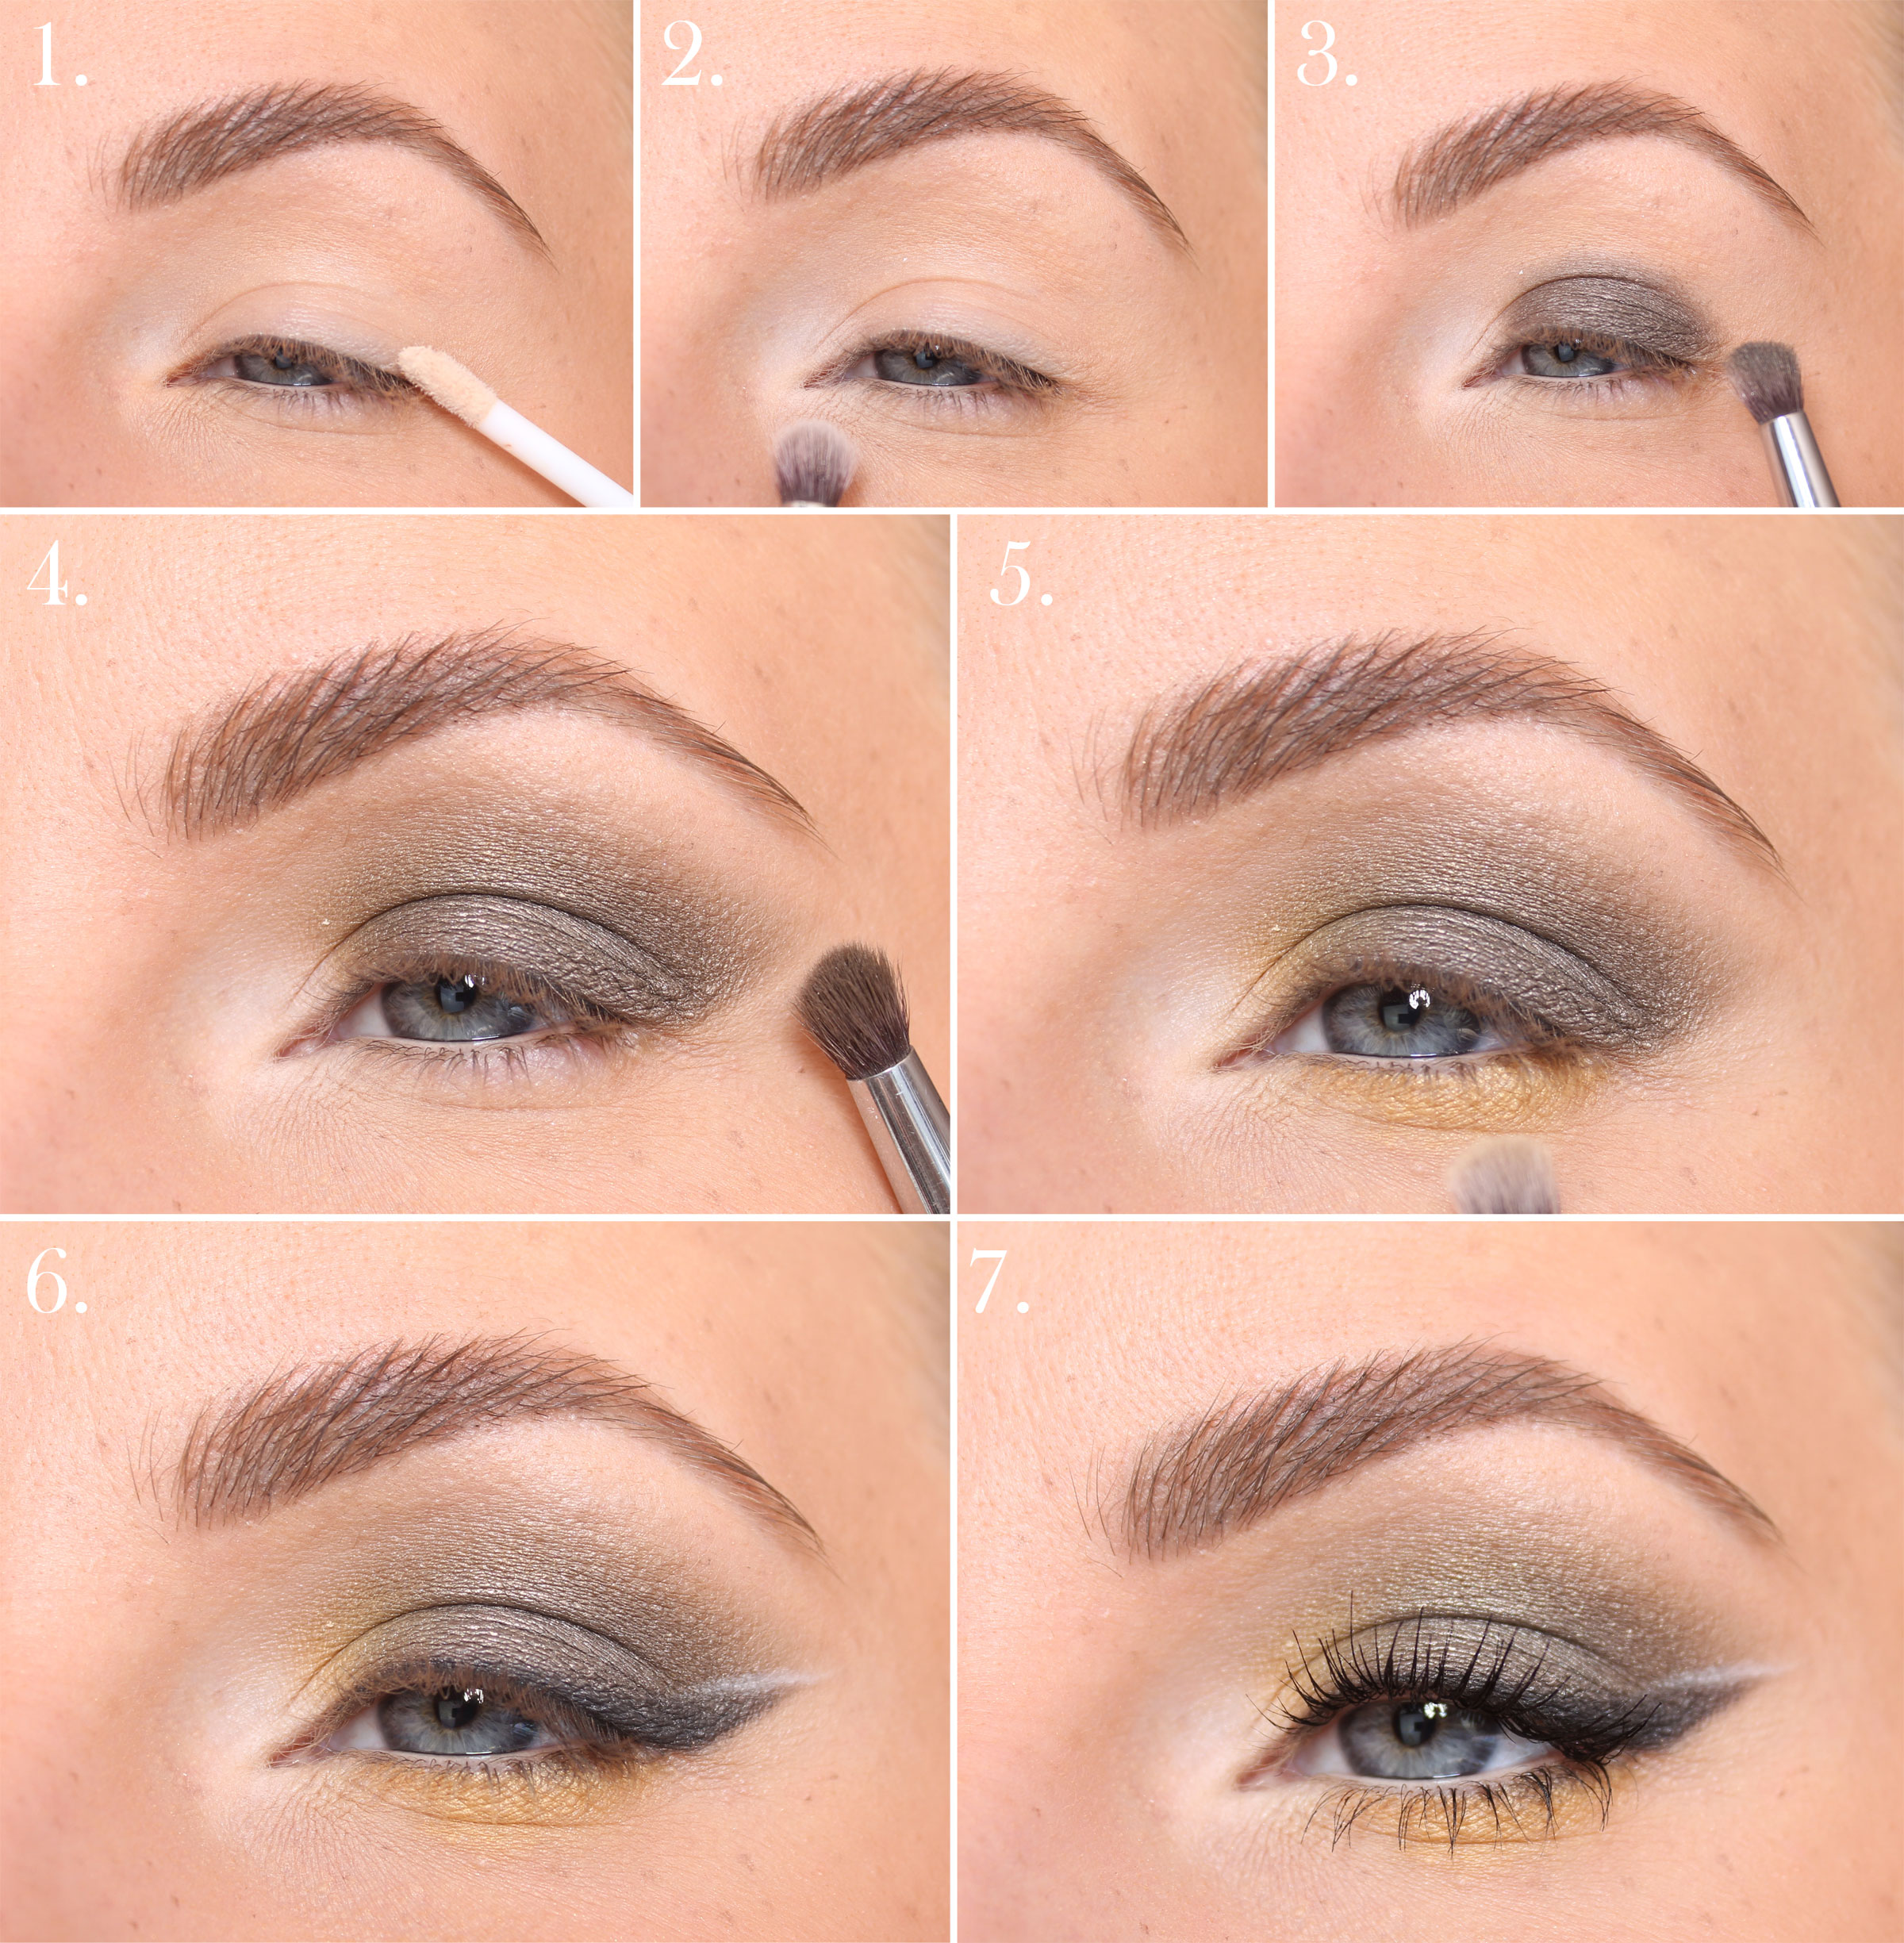 yellow makeup step by step